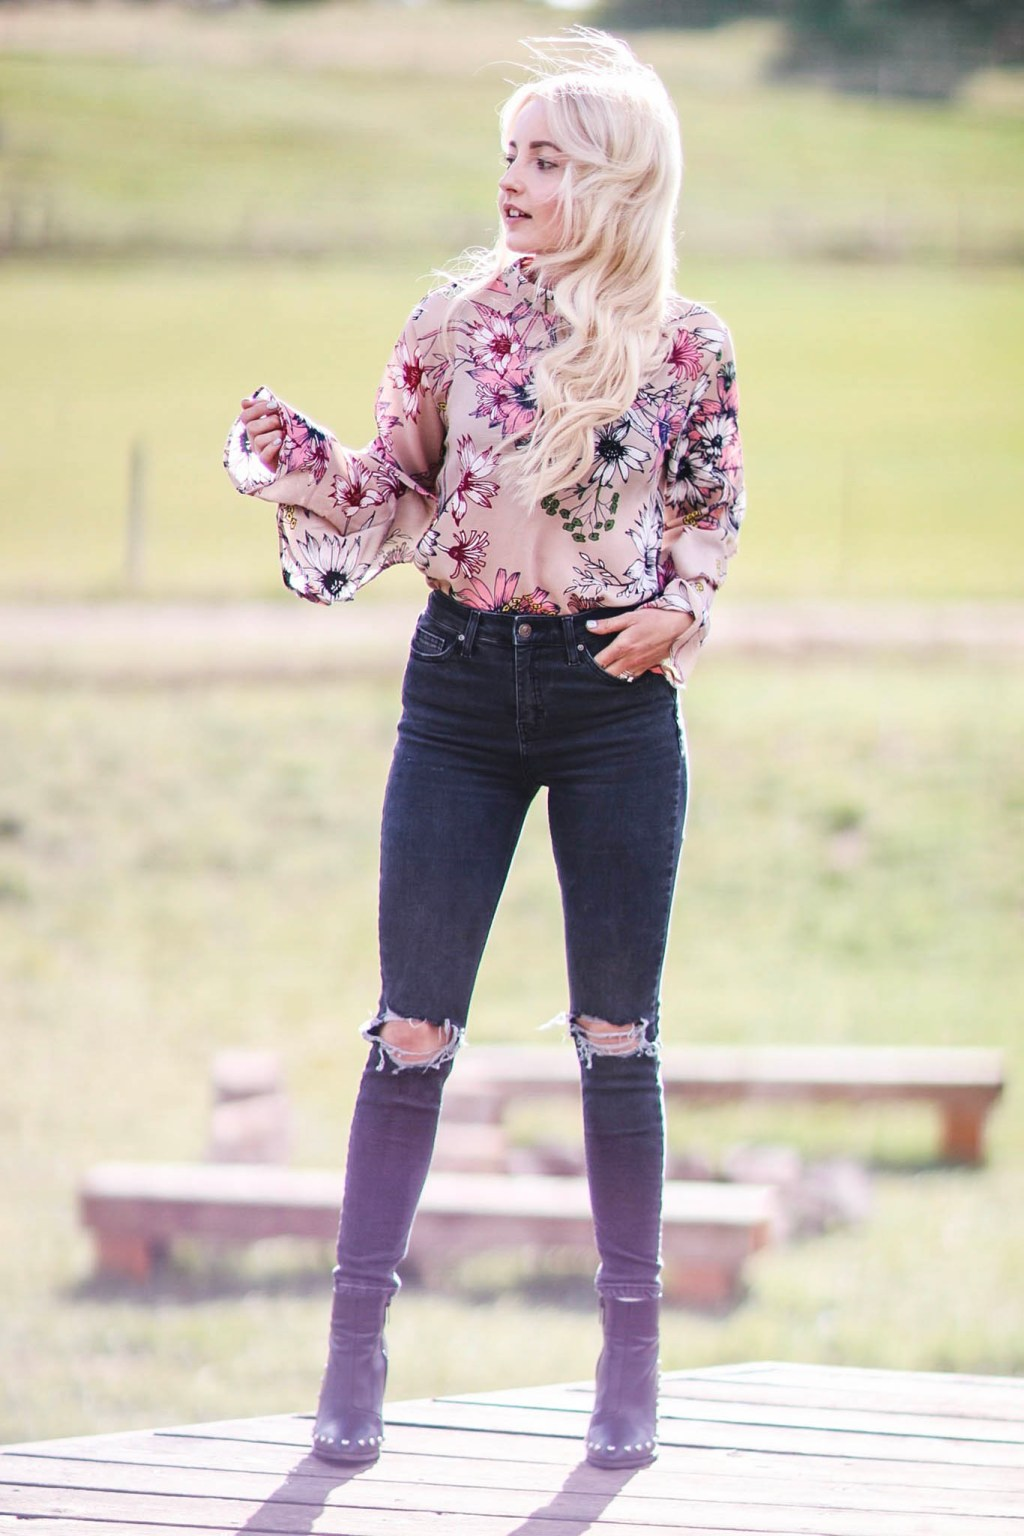 Alena Gidenko of modaprints.com styles a floral ruffled top with dark grey skinny jeans